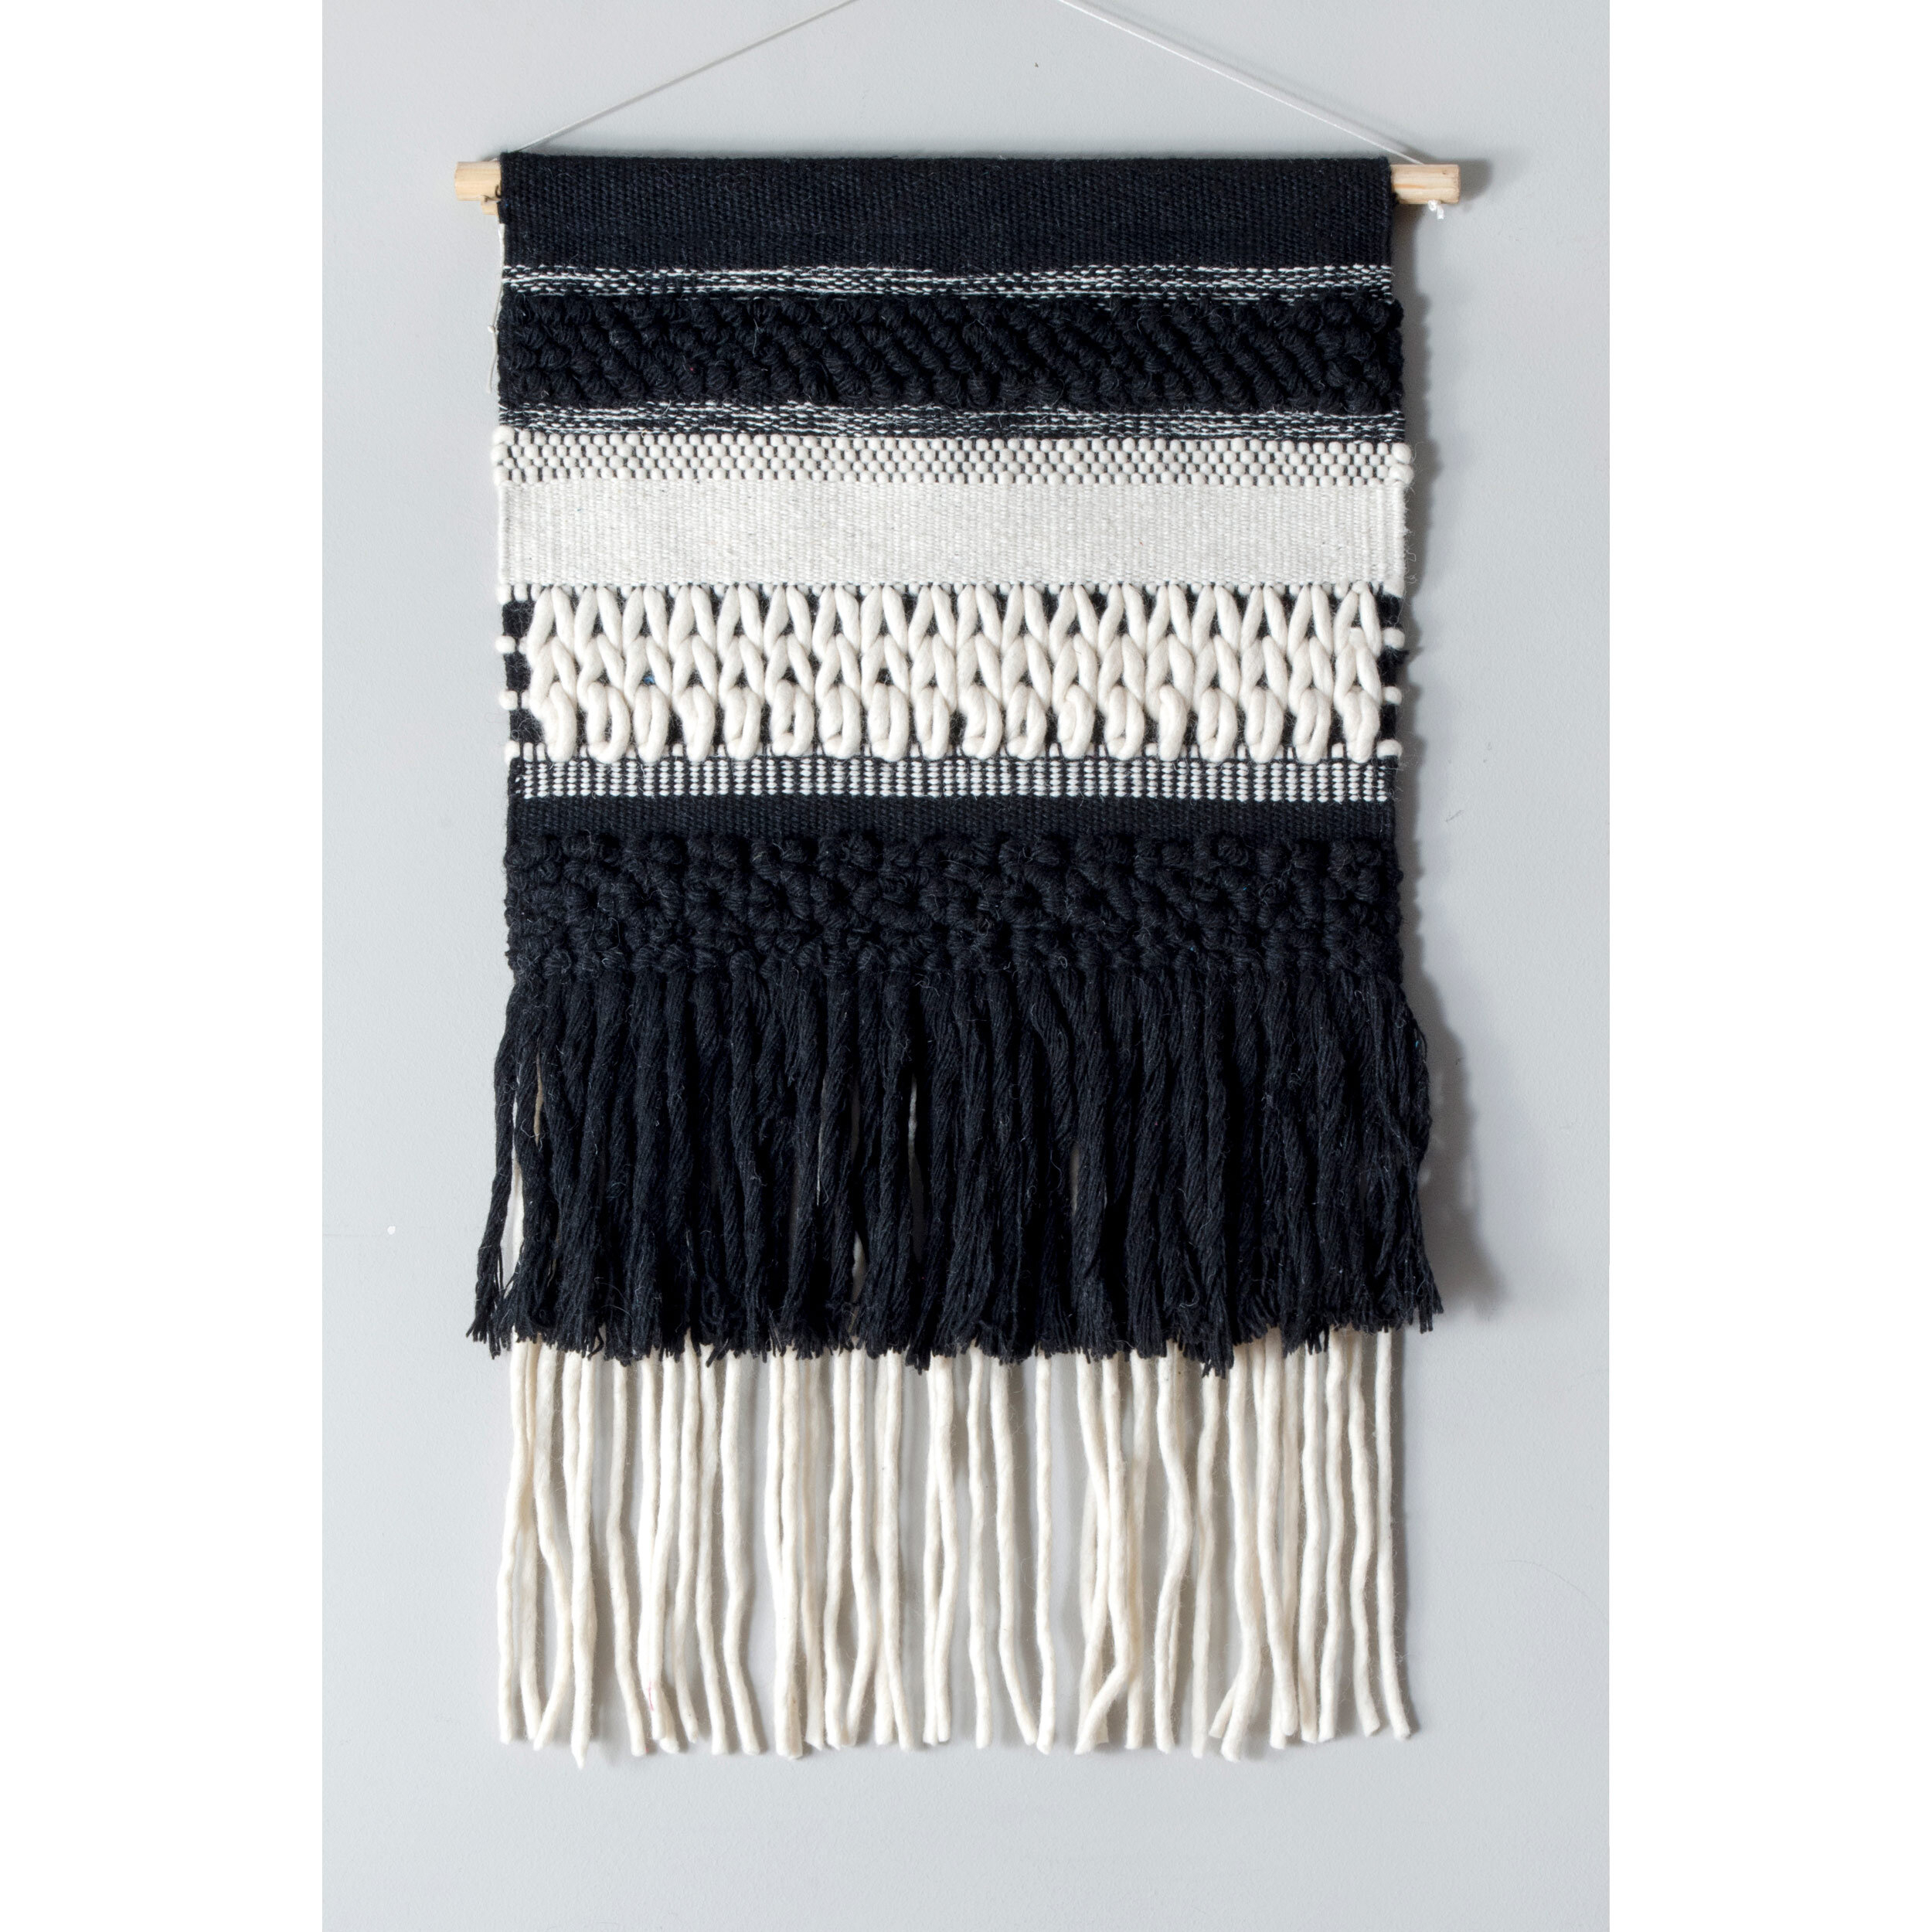 Modern Gray Wall Hangings | Allmodern Throughout Latest Blended Fabric Teresina Wool And Viscose Wall Hangings With Hanging Accessories Included (View 13 of 20)